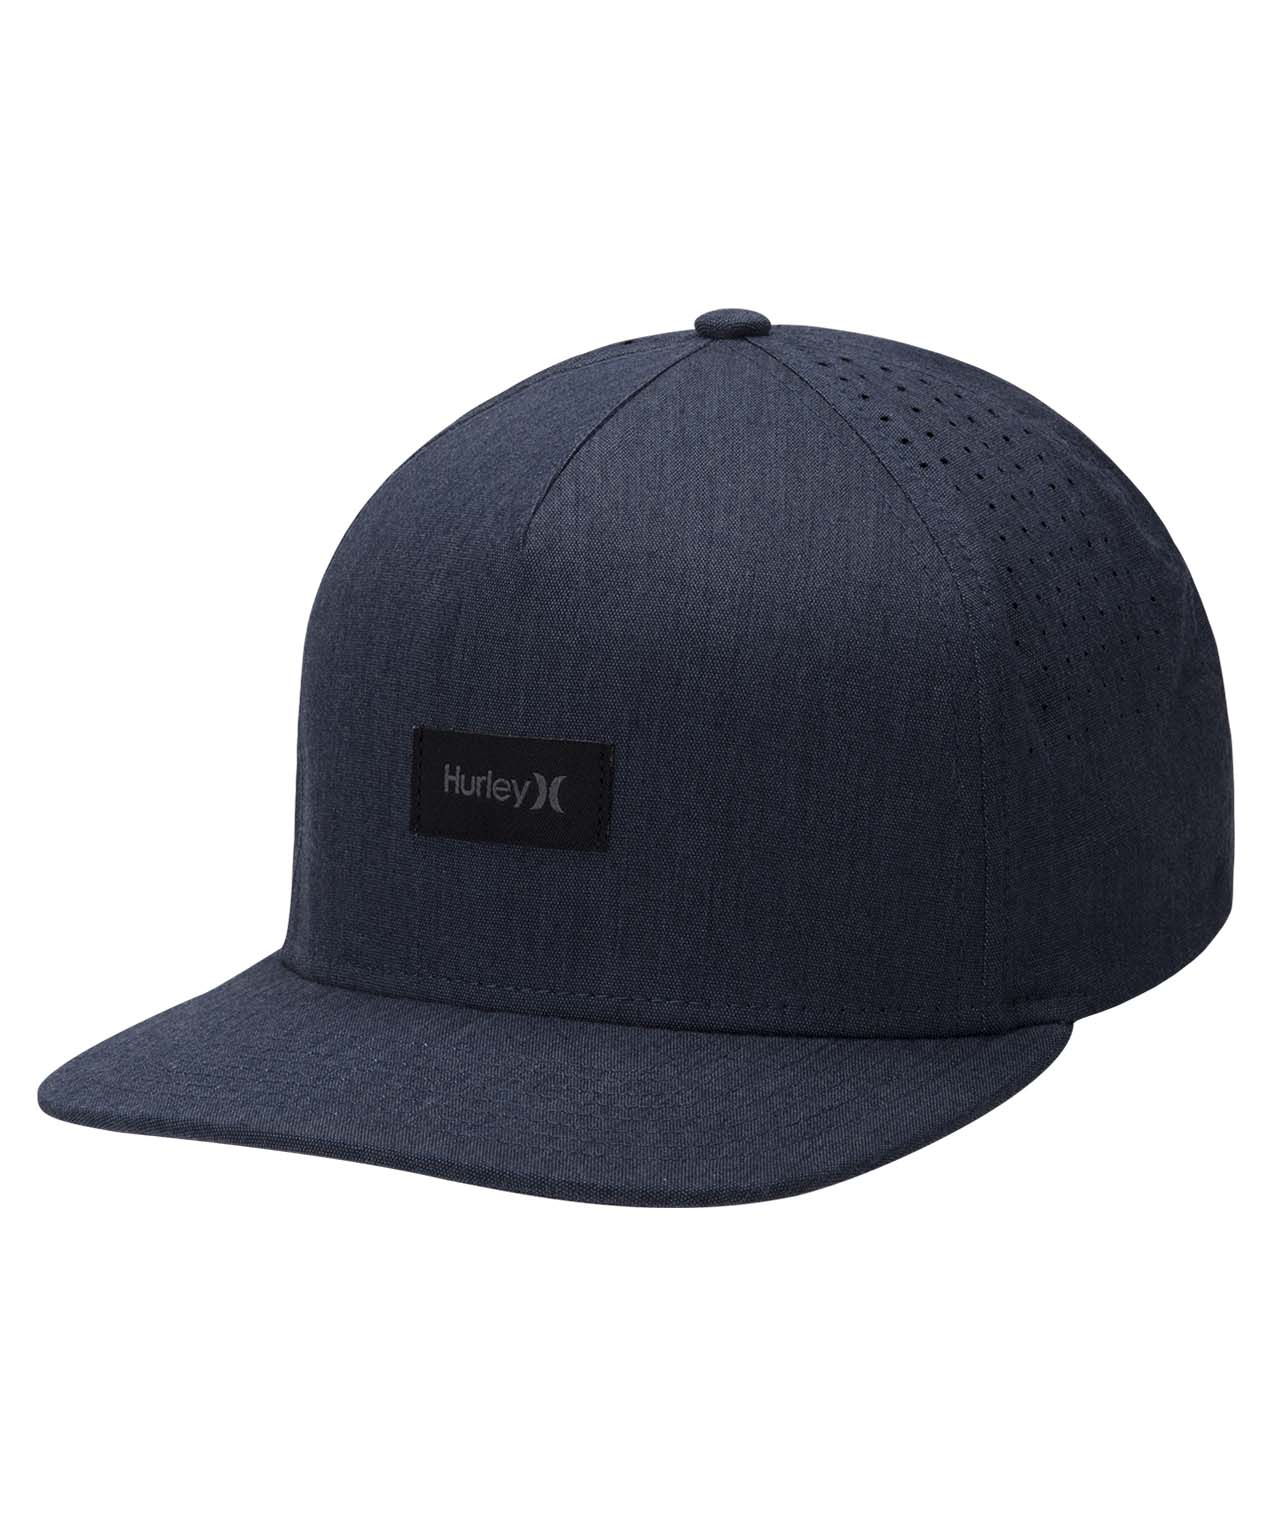 HURLEY M DRI-FIT STAPLE HAT 451 AH9623